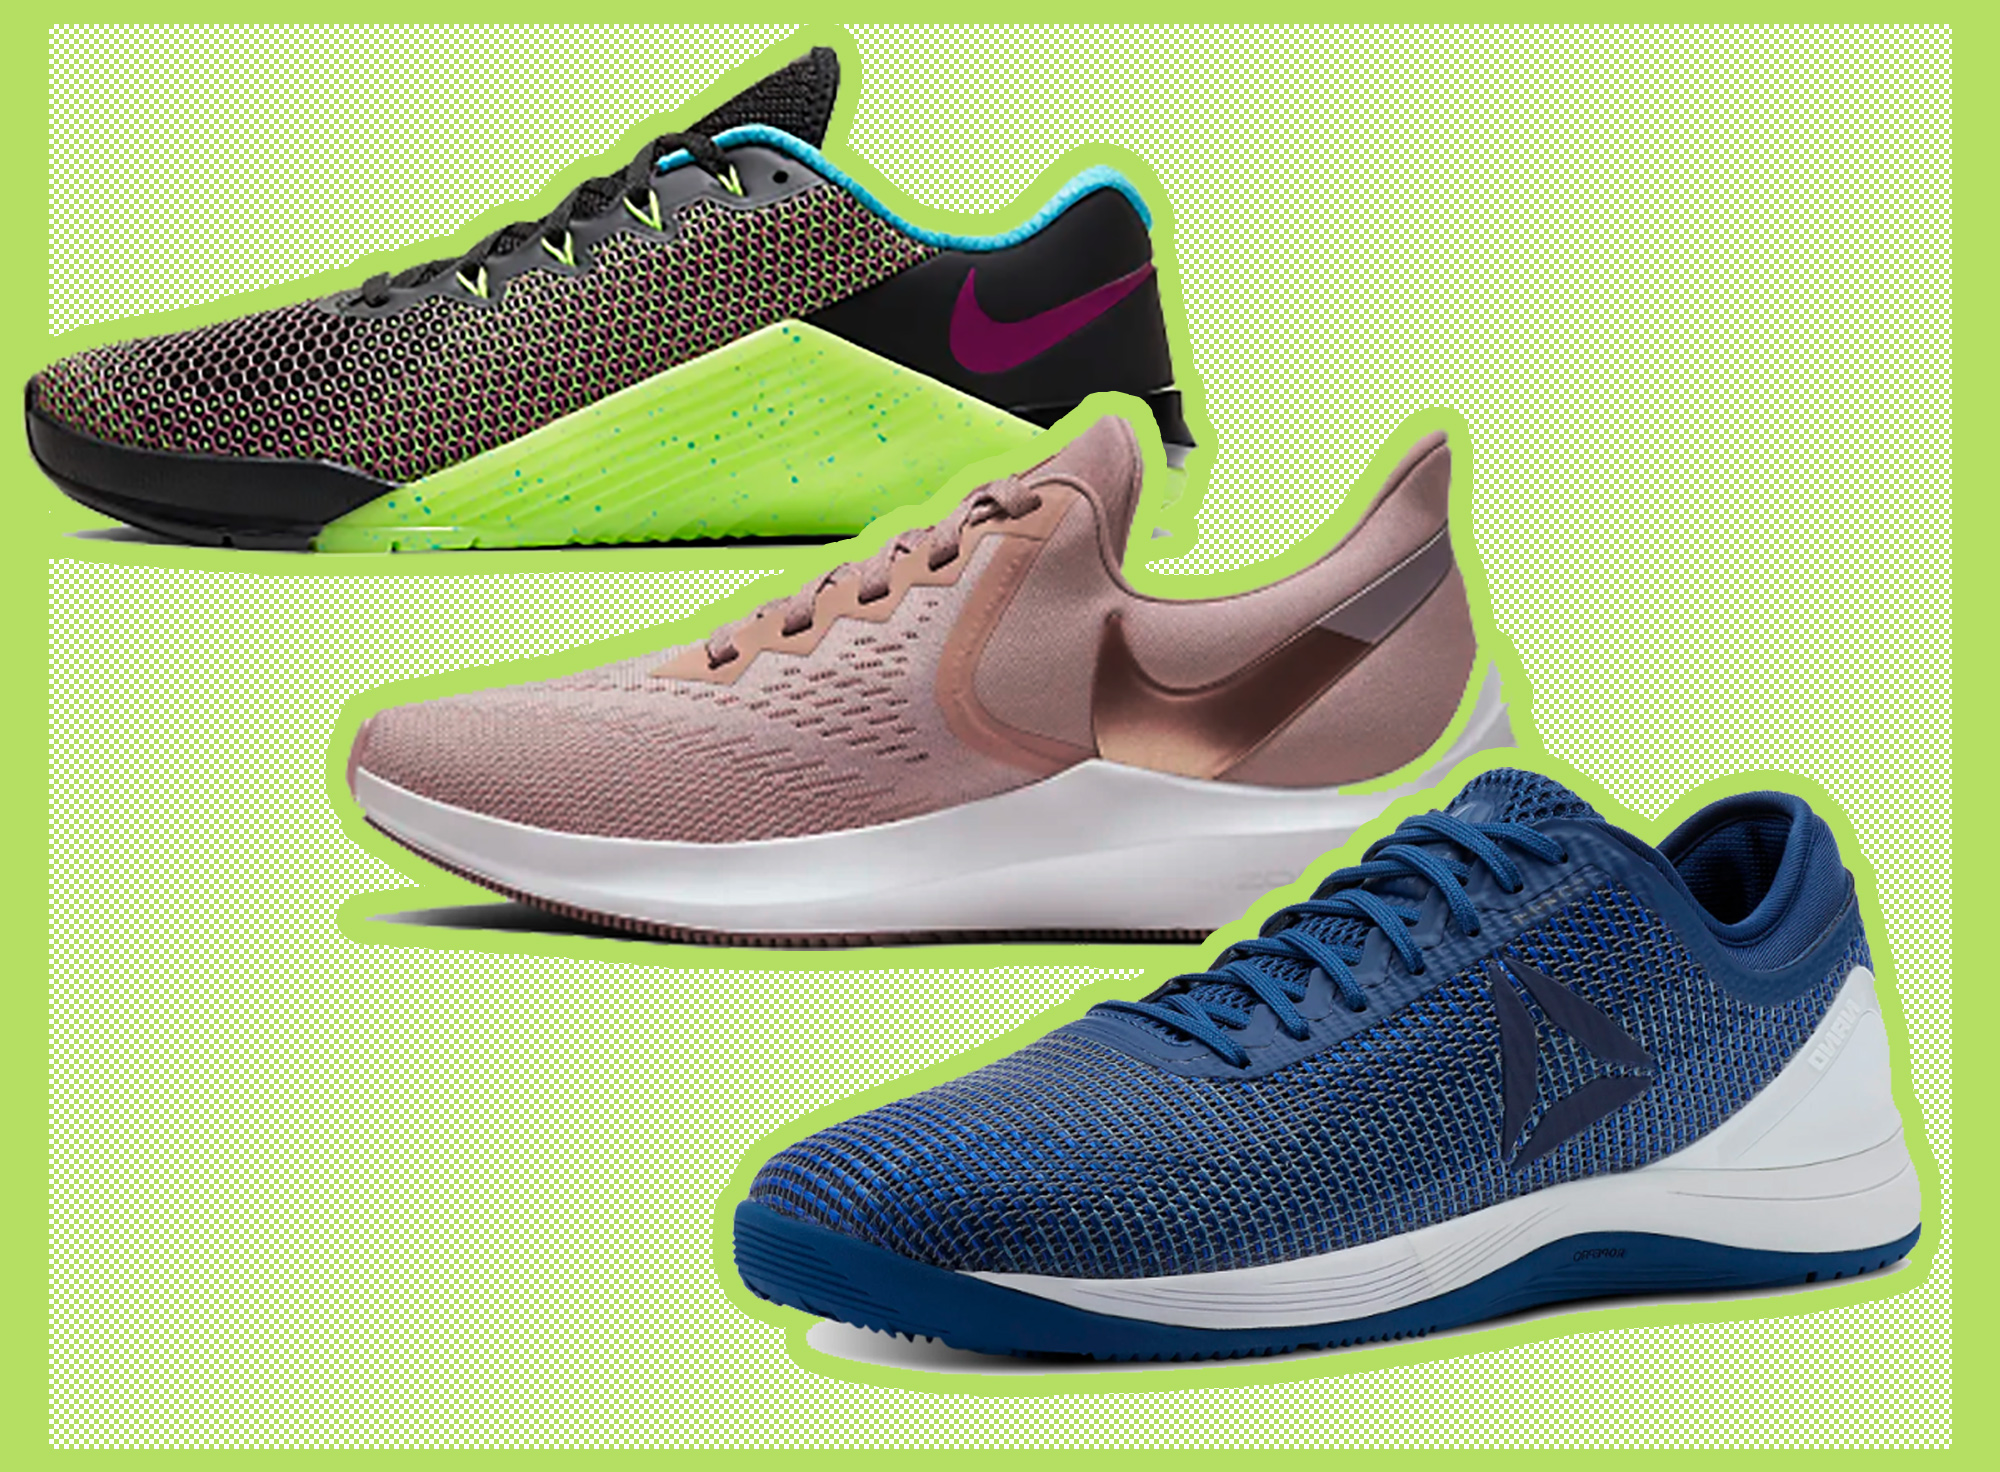 Best Gym Shoes And Workout Sneakers For